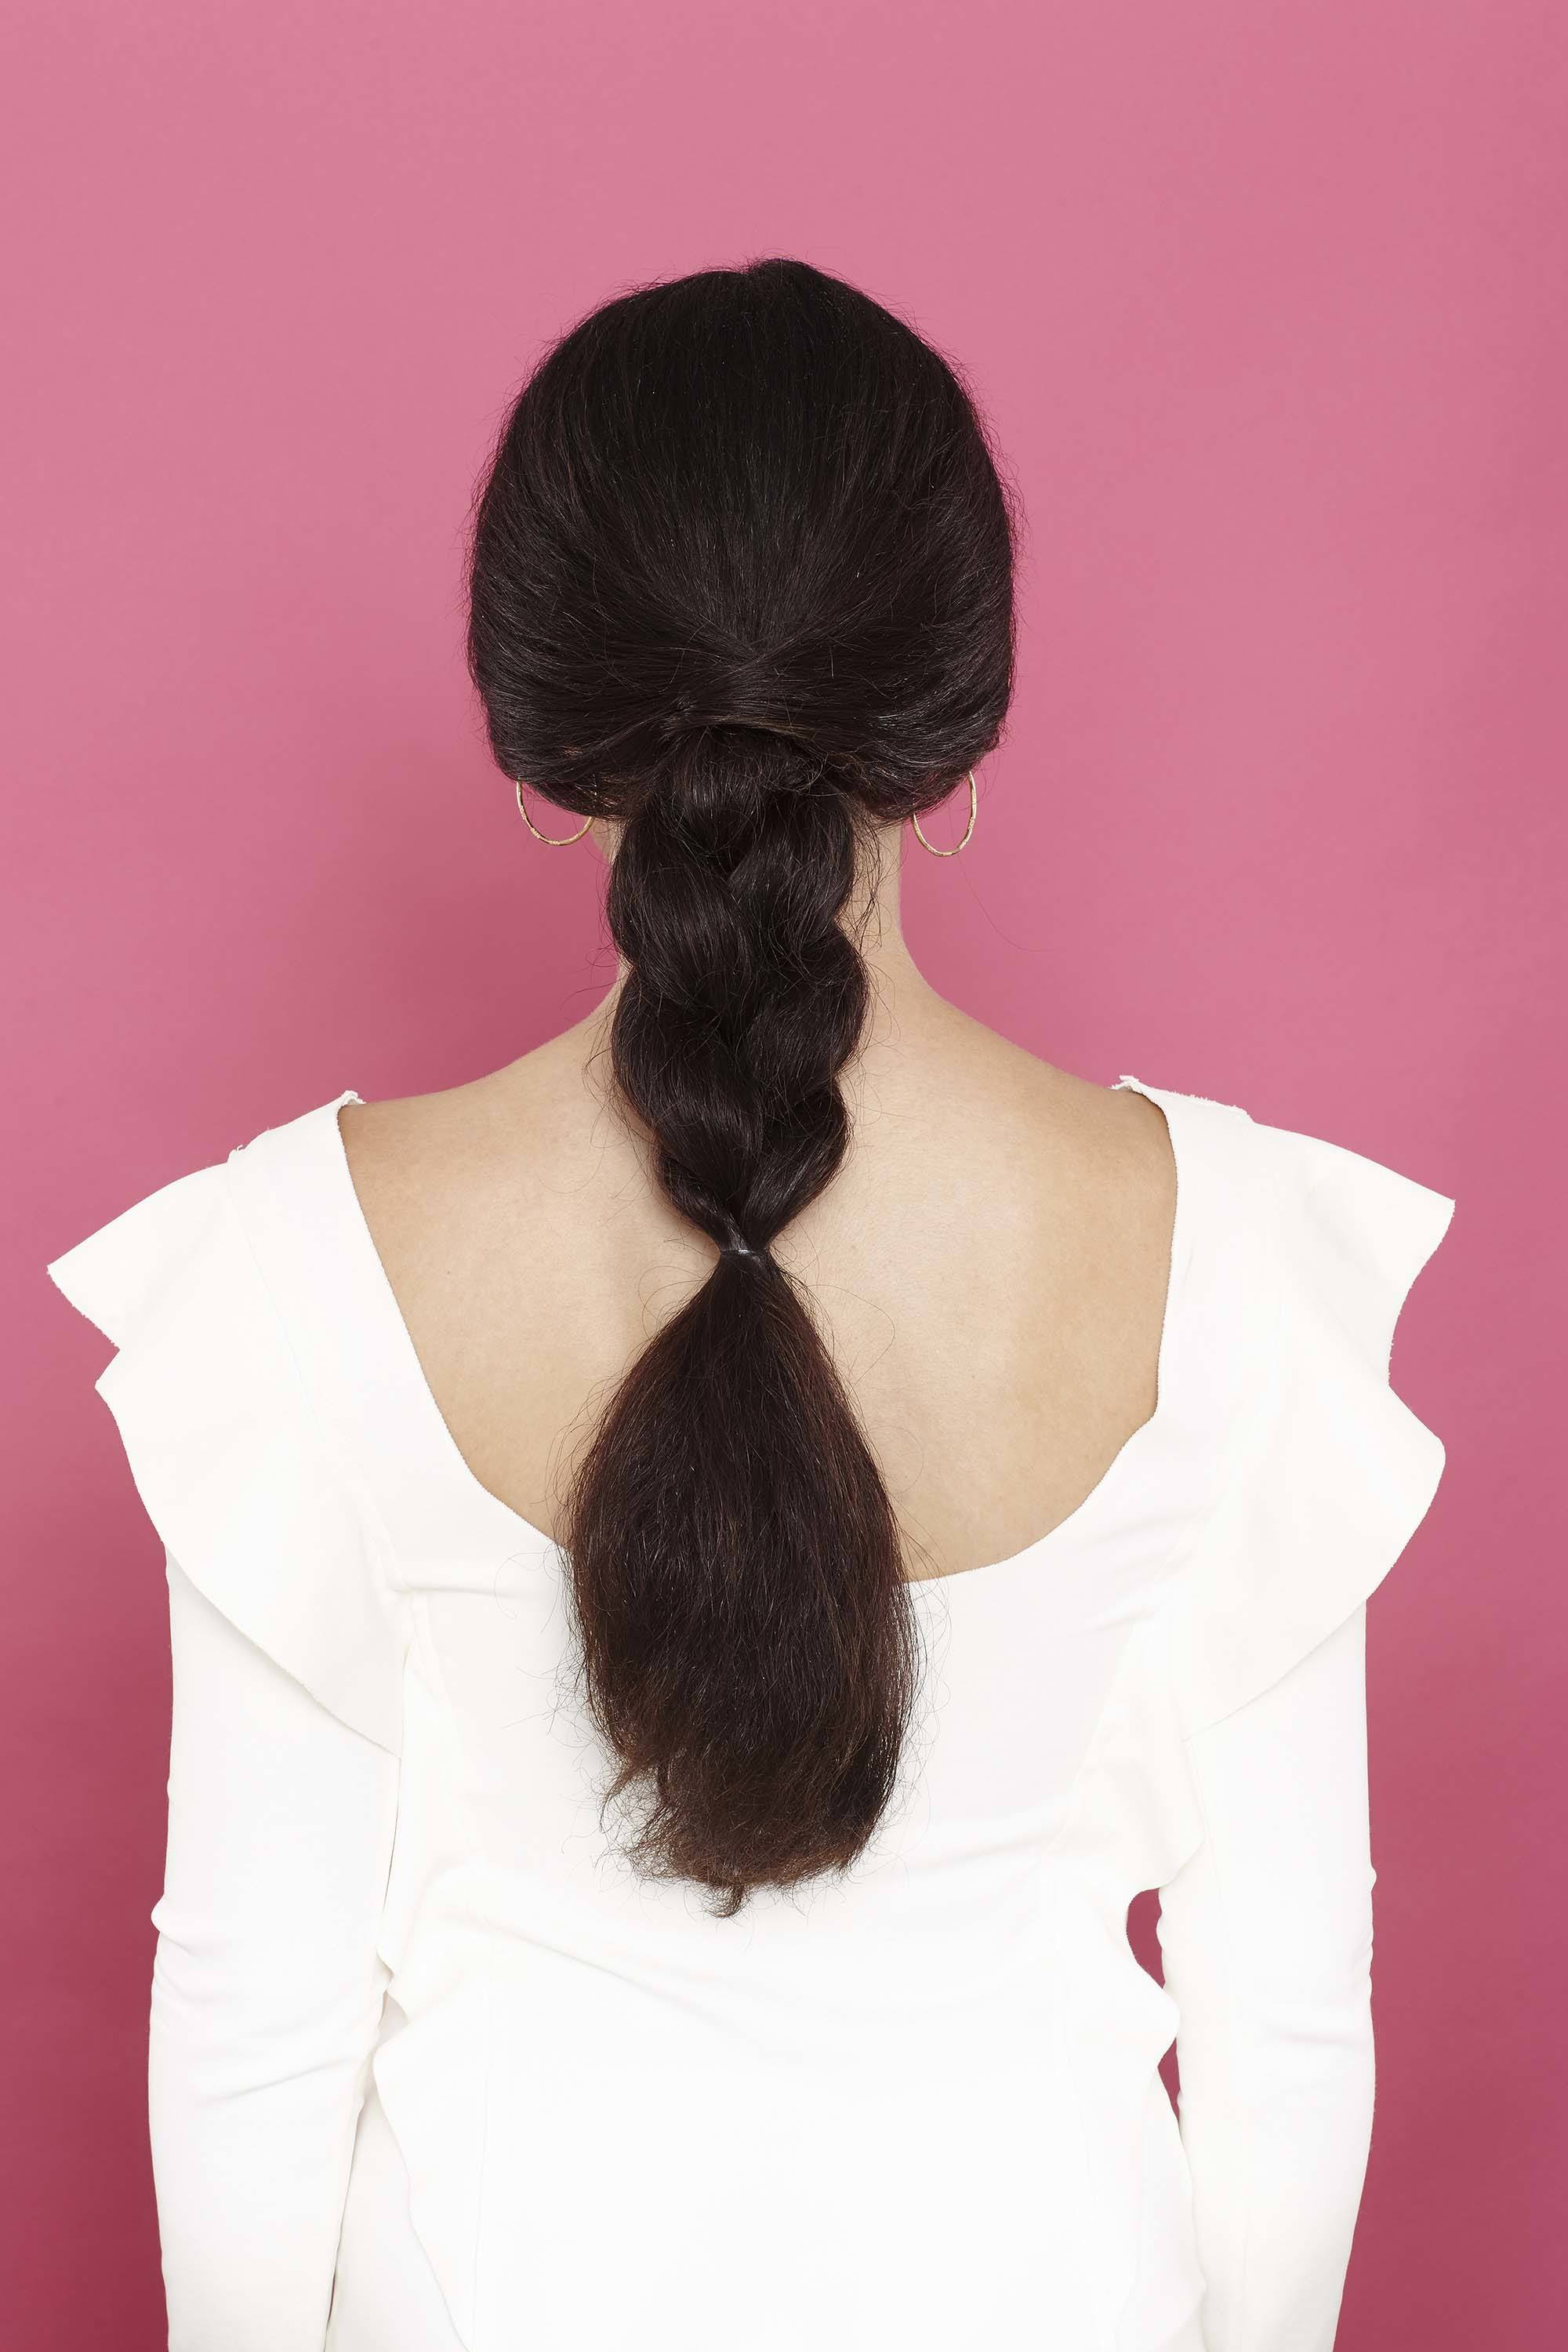 Braided wedding hair - thick long dark hair in low ponytail with braided finish